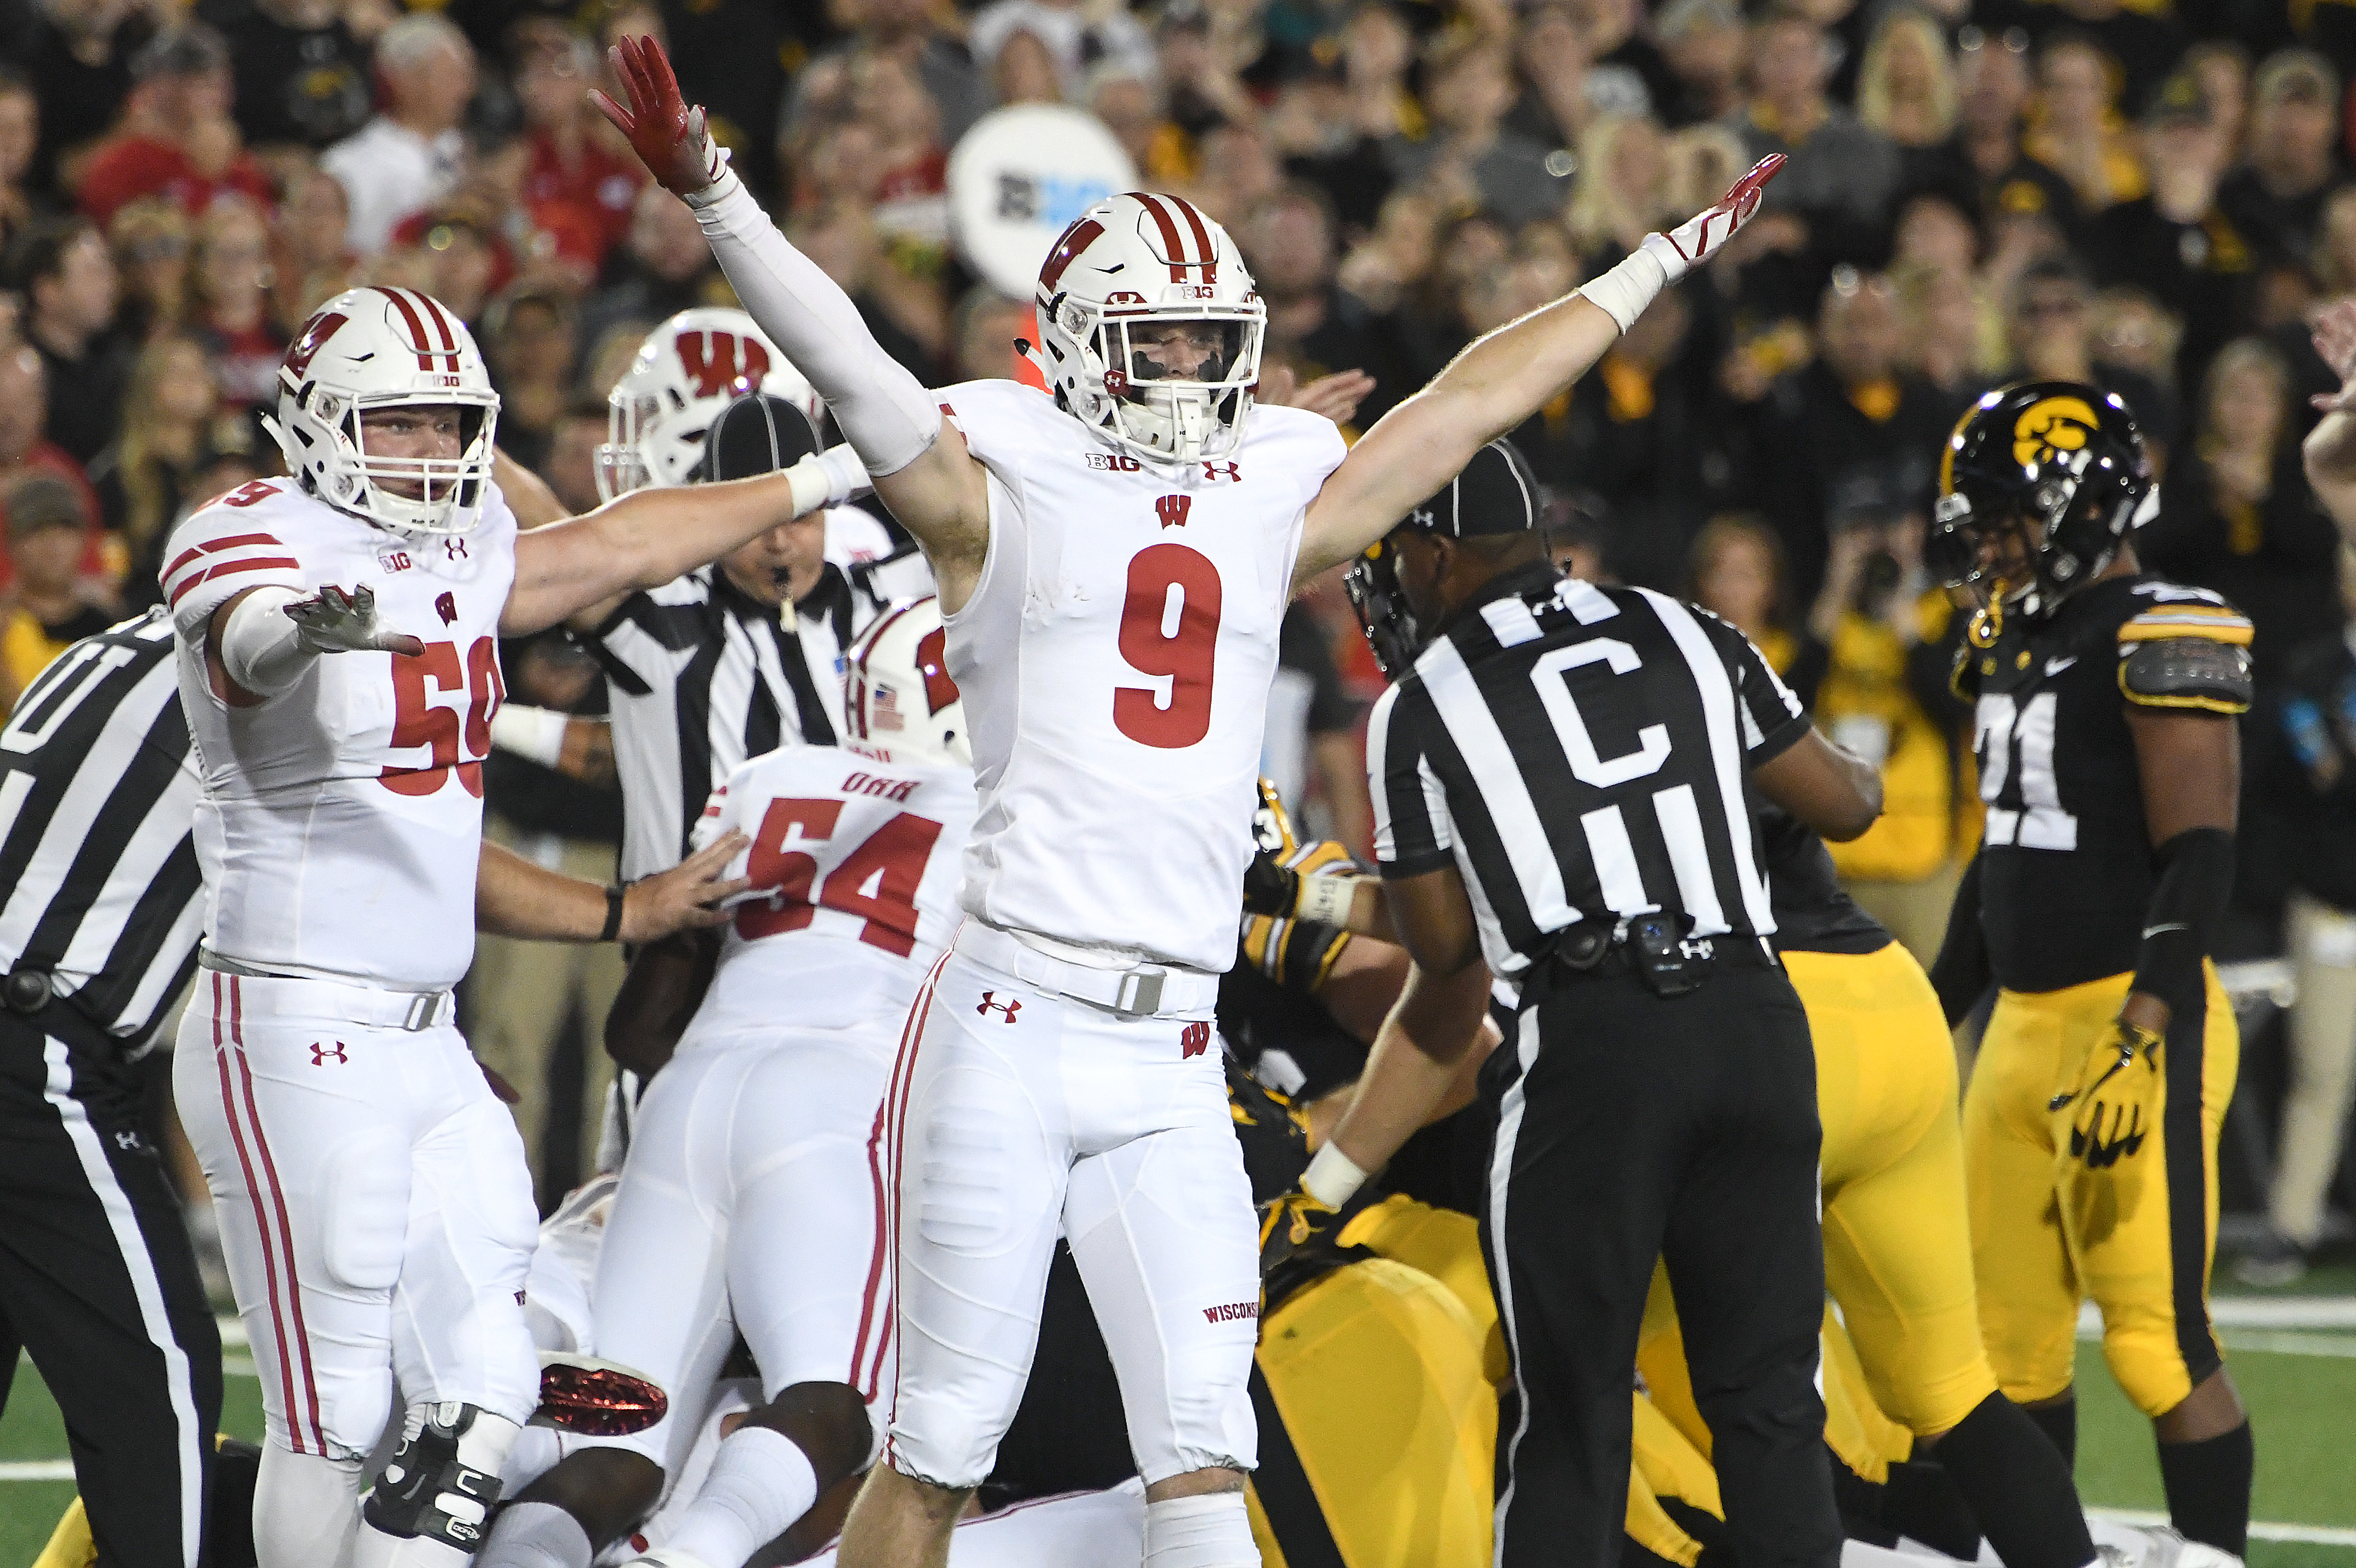 COLLEGE FOOTBALL: SEP 22 Wisconsin at Iowa